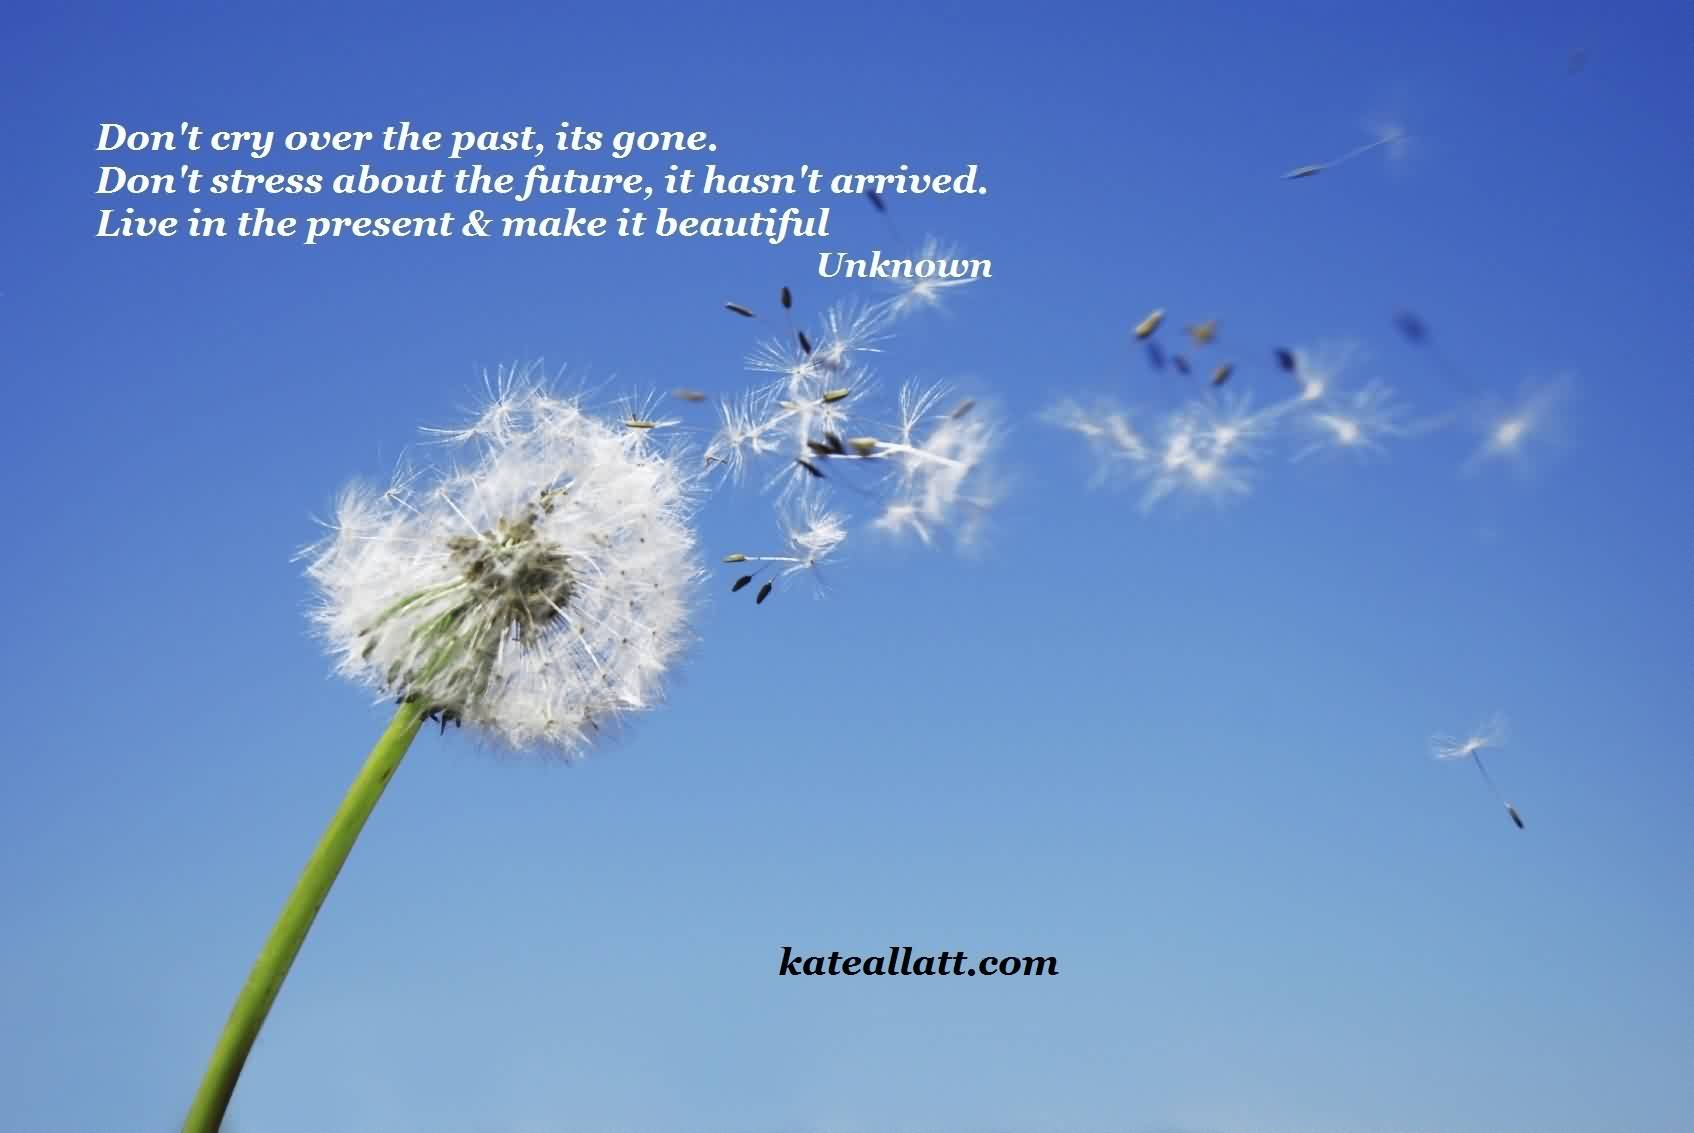 Beautiful Charity Quote By Unknown~ Don't cry over the past,its gone..